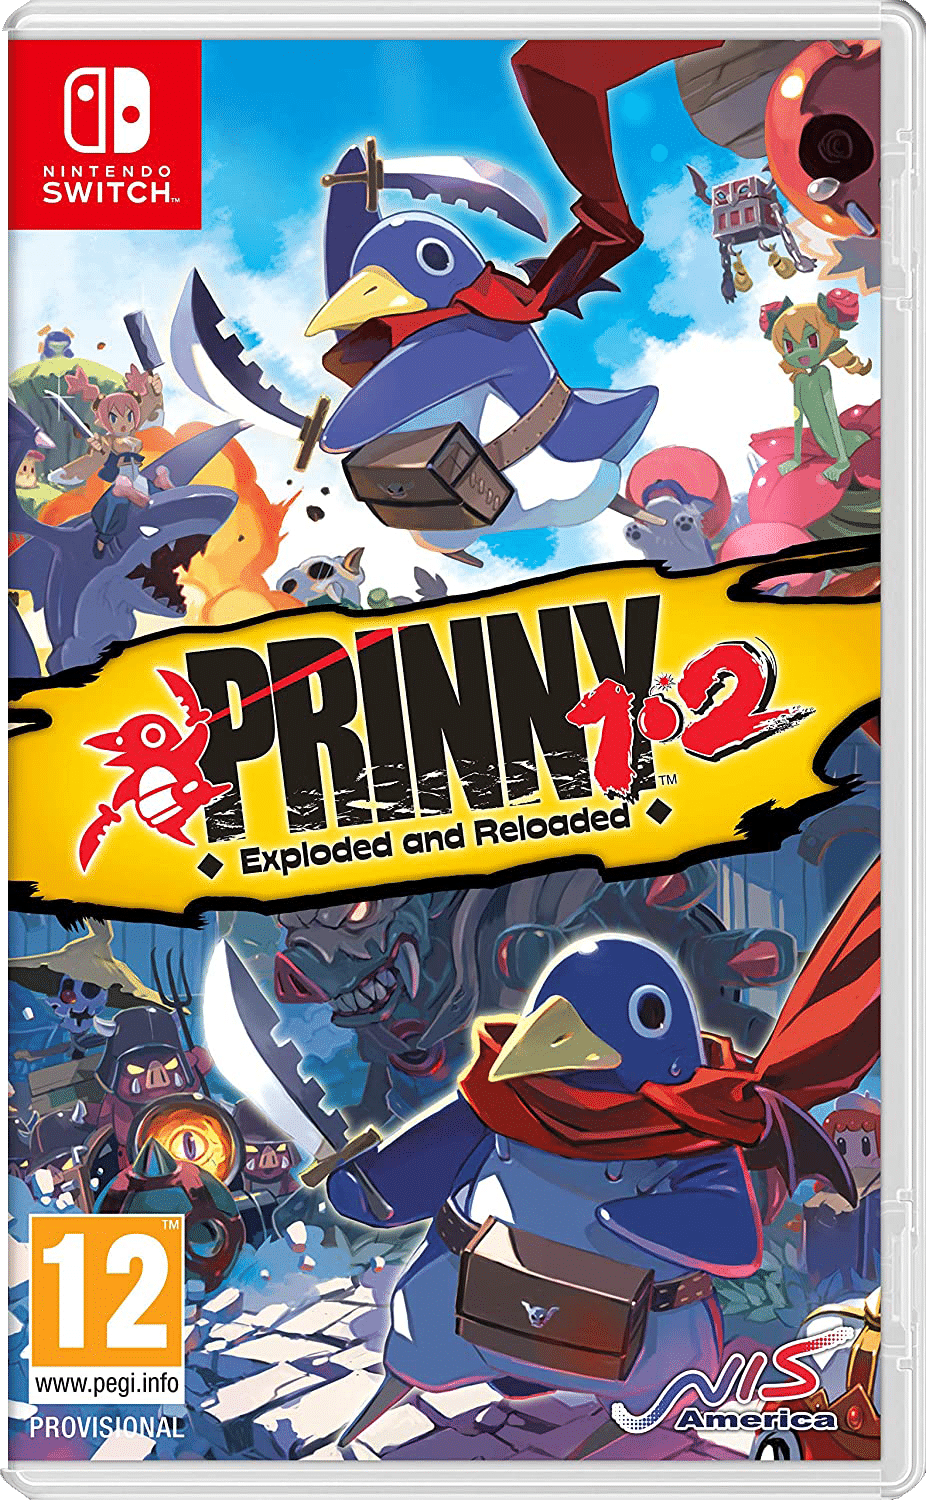 Prinny 1 2 Exploded and Reloaded - Ongame Network